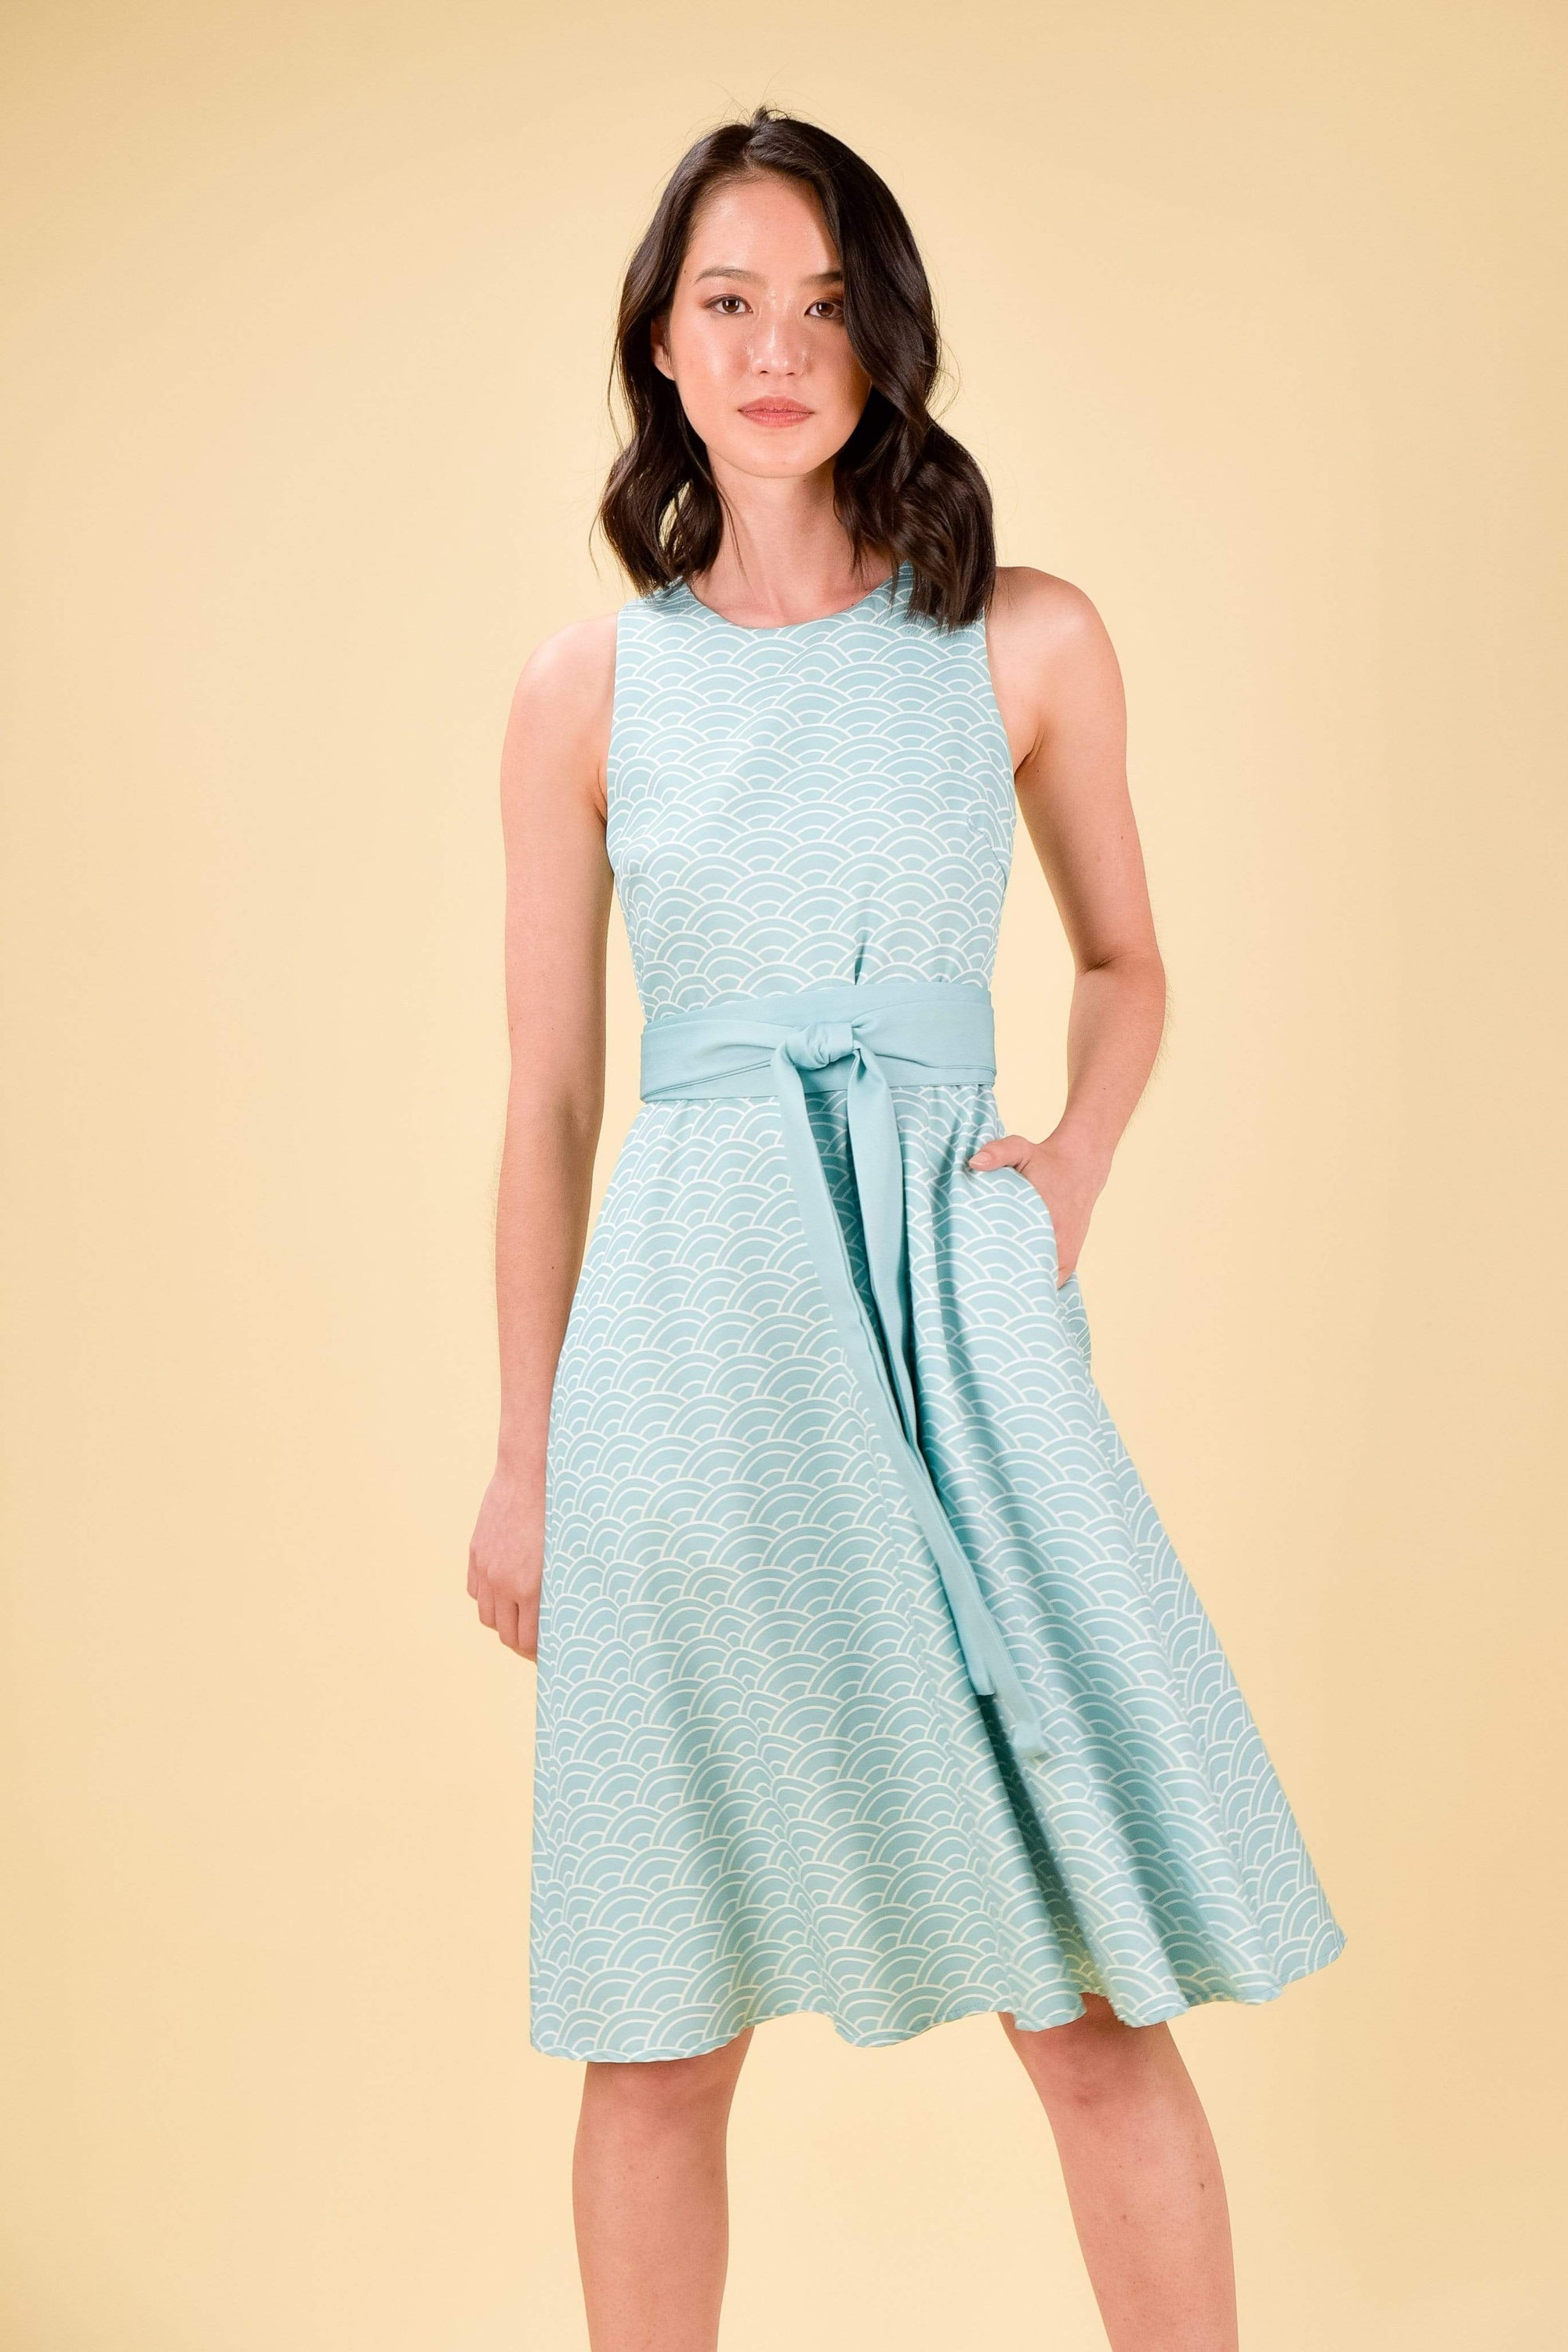 *RESTOCKED* AOI FIT-AND-FLARE DRESS IN SEAFOAM